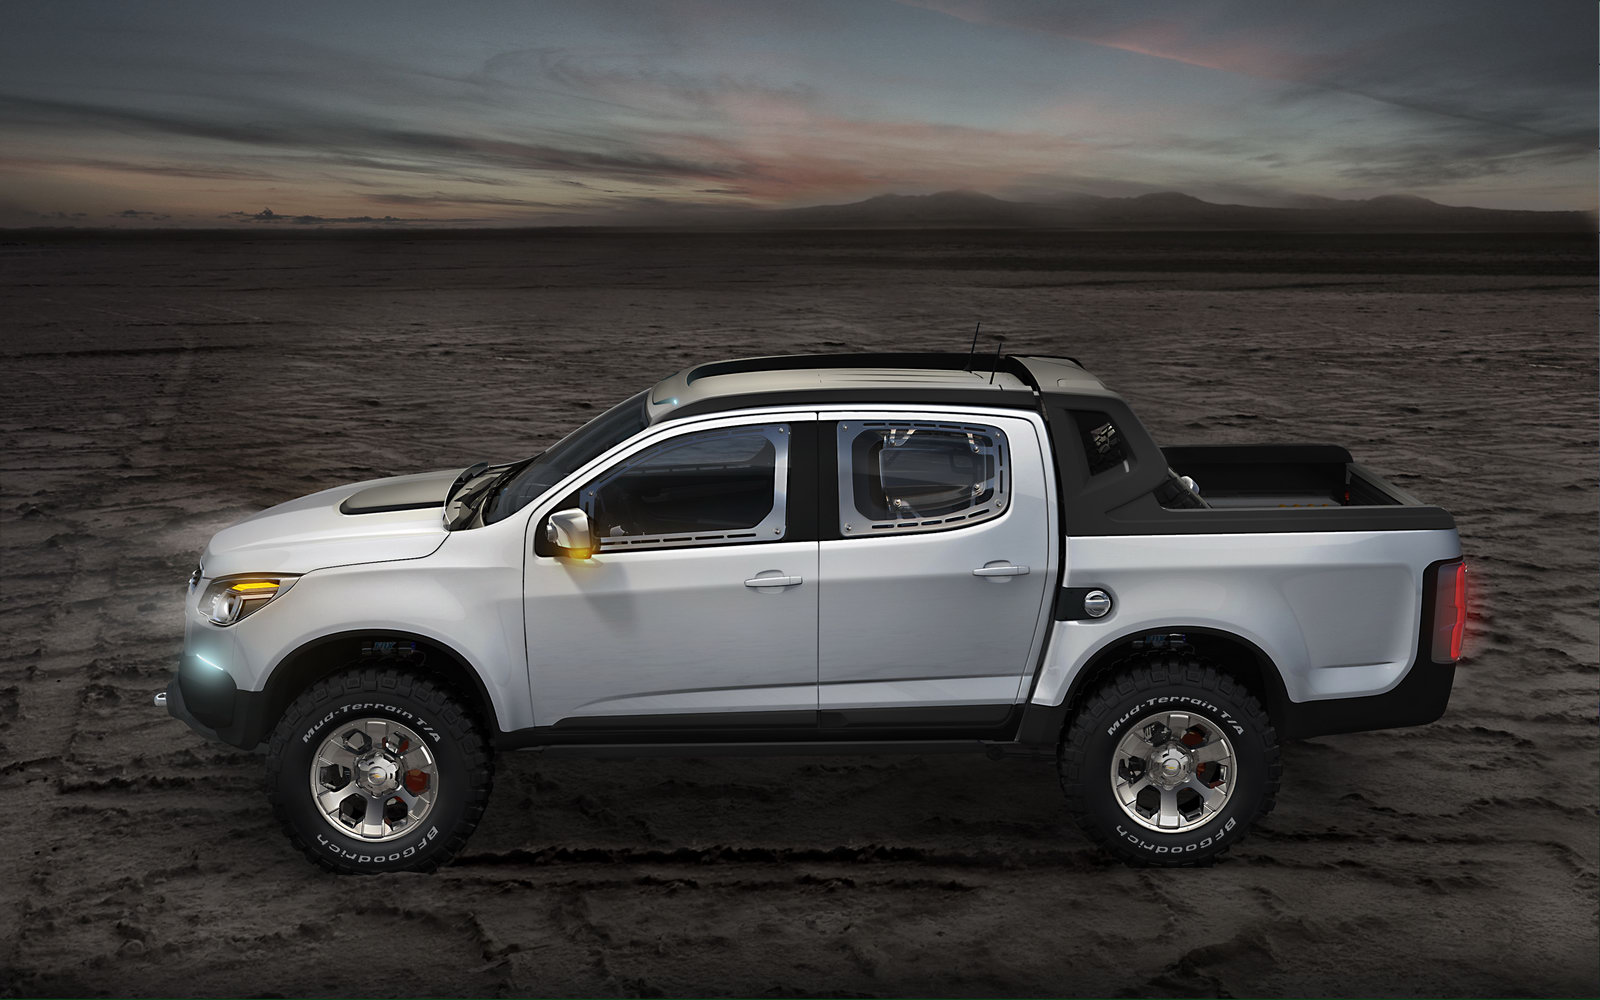 Chevrolet Colorado Double Cab Rally Concept 1 New Chevrolet Colorado with Double Cab Rally Concept –Review